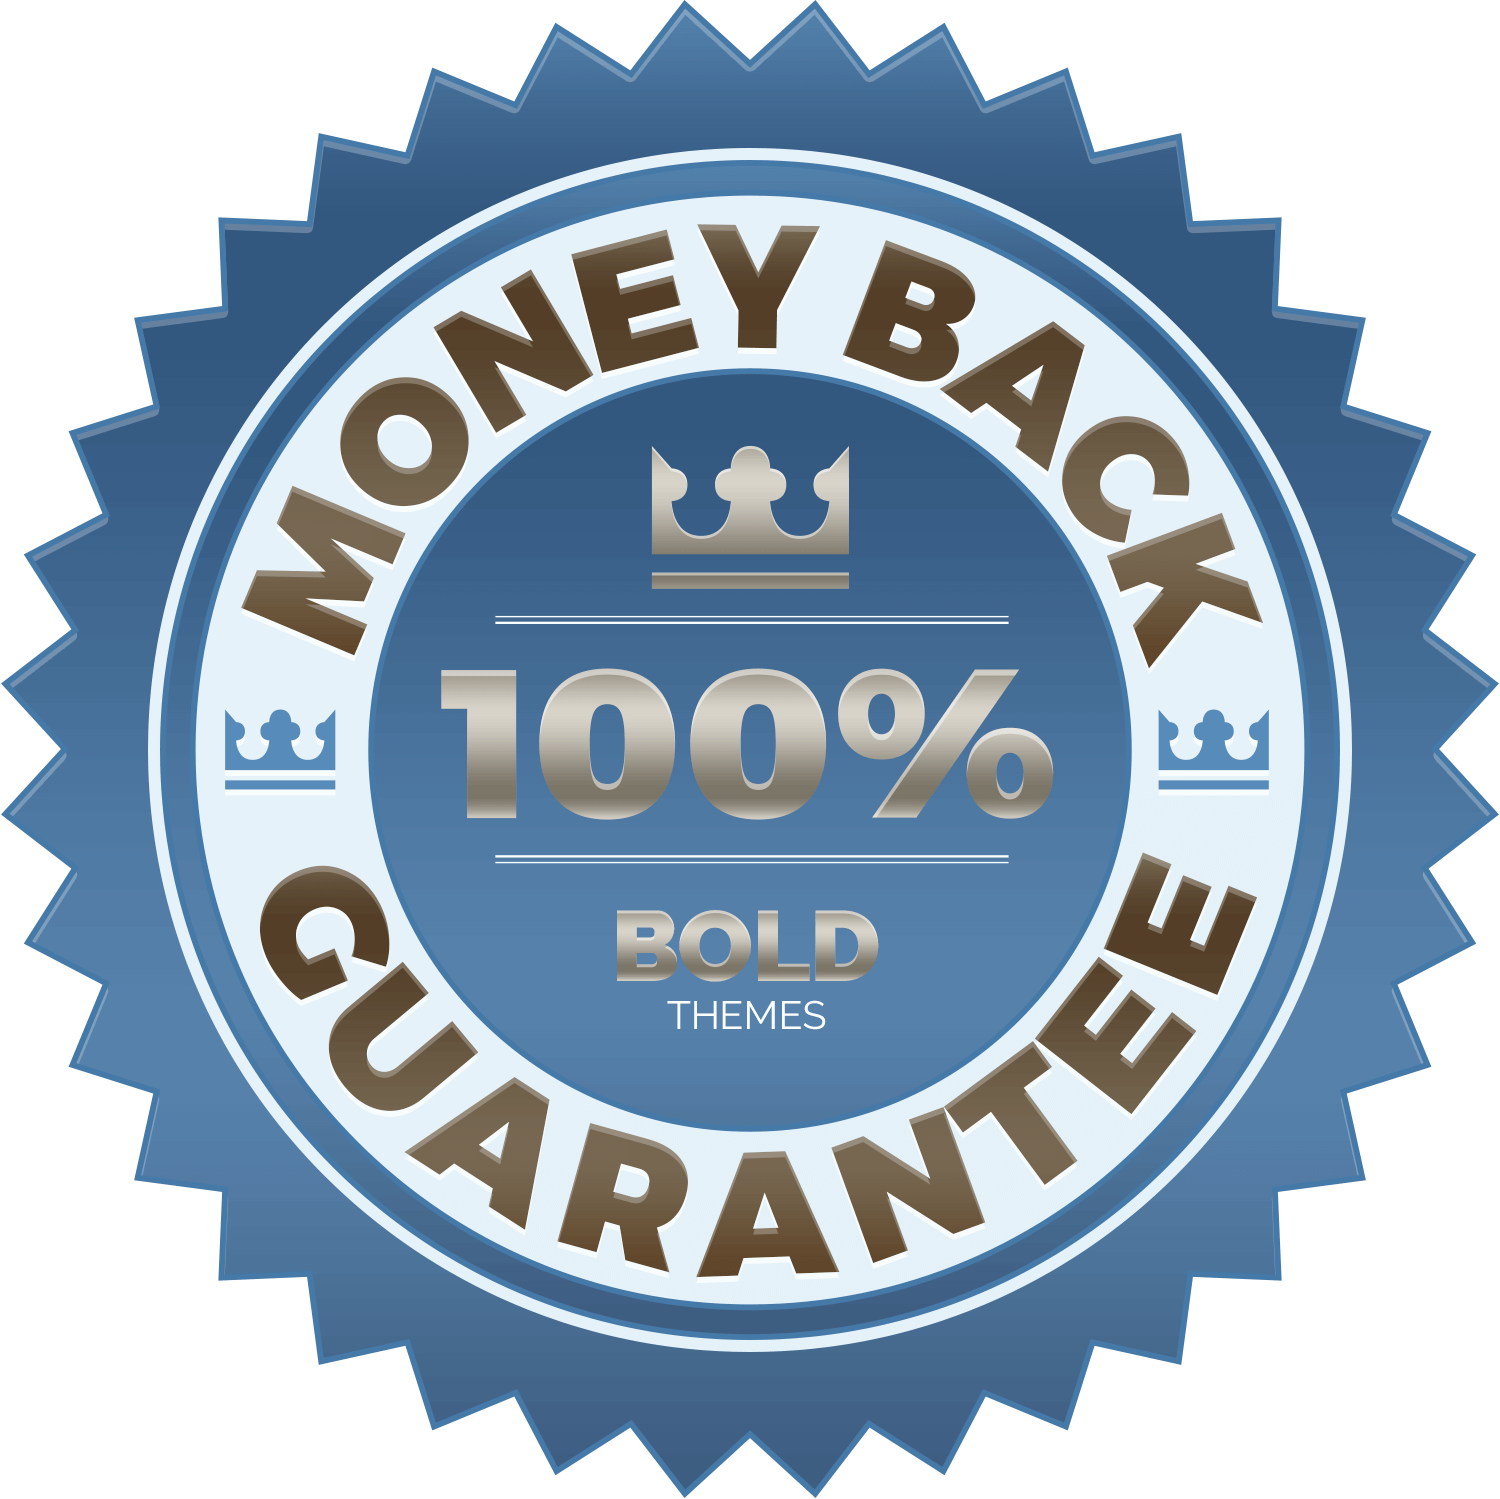 http://jaanhome.com/wp-content/uploads/2017/05/Money-back-guarantee.png